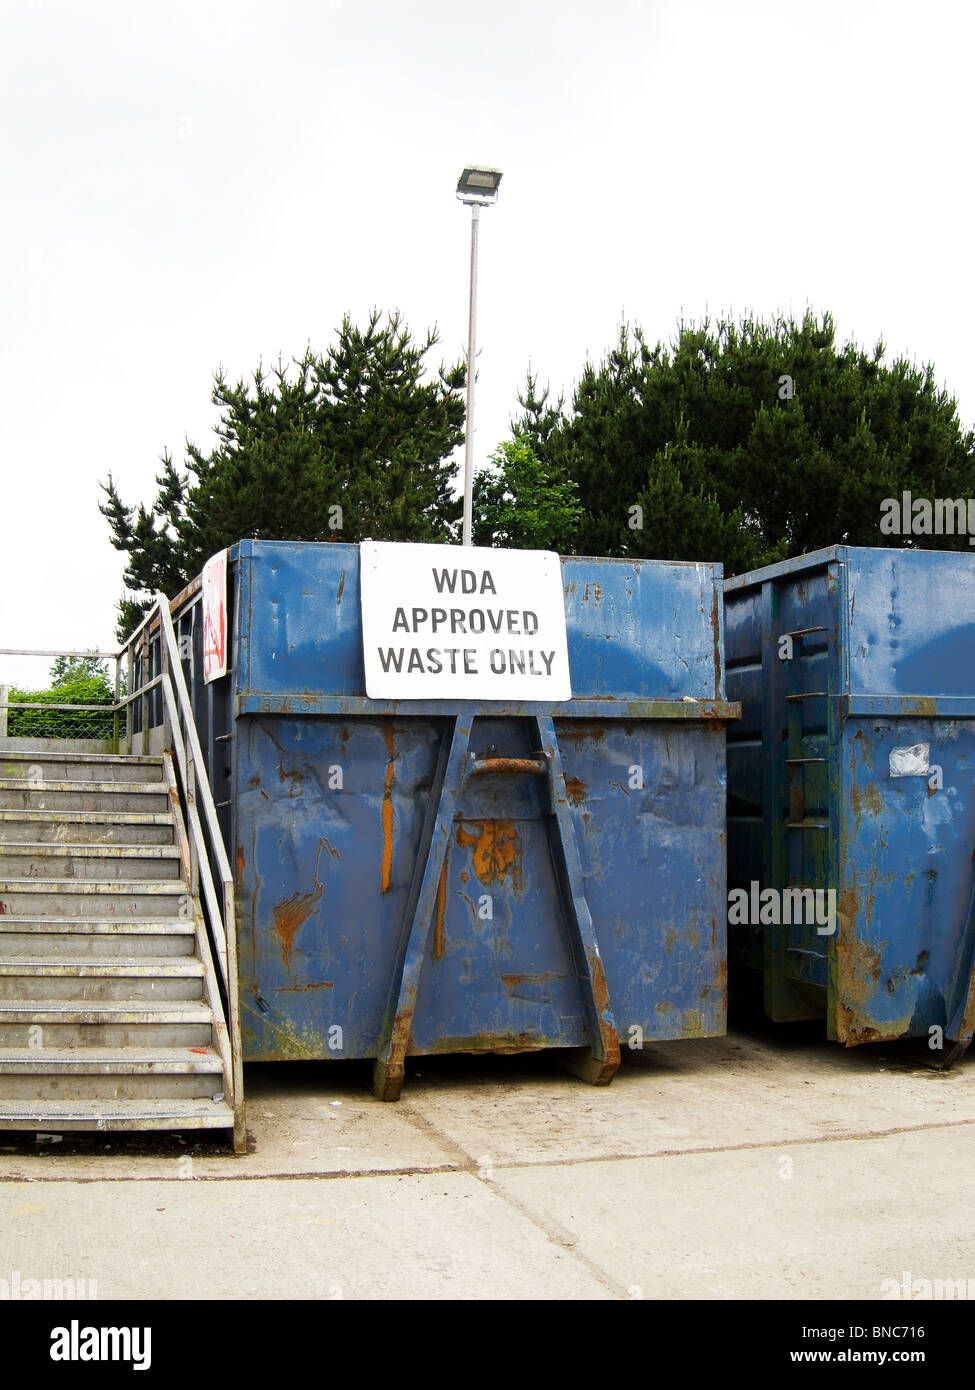 a local council run waste recycling centre near redruth in cornwall, uk - Stock Image